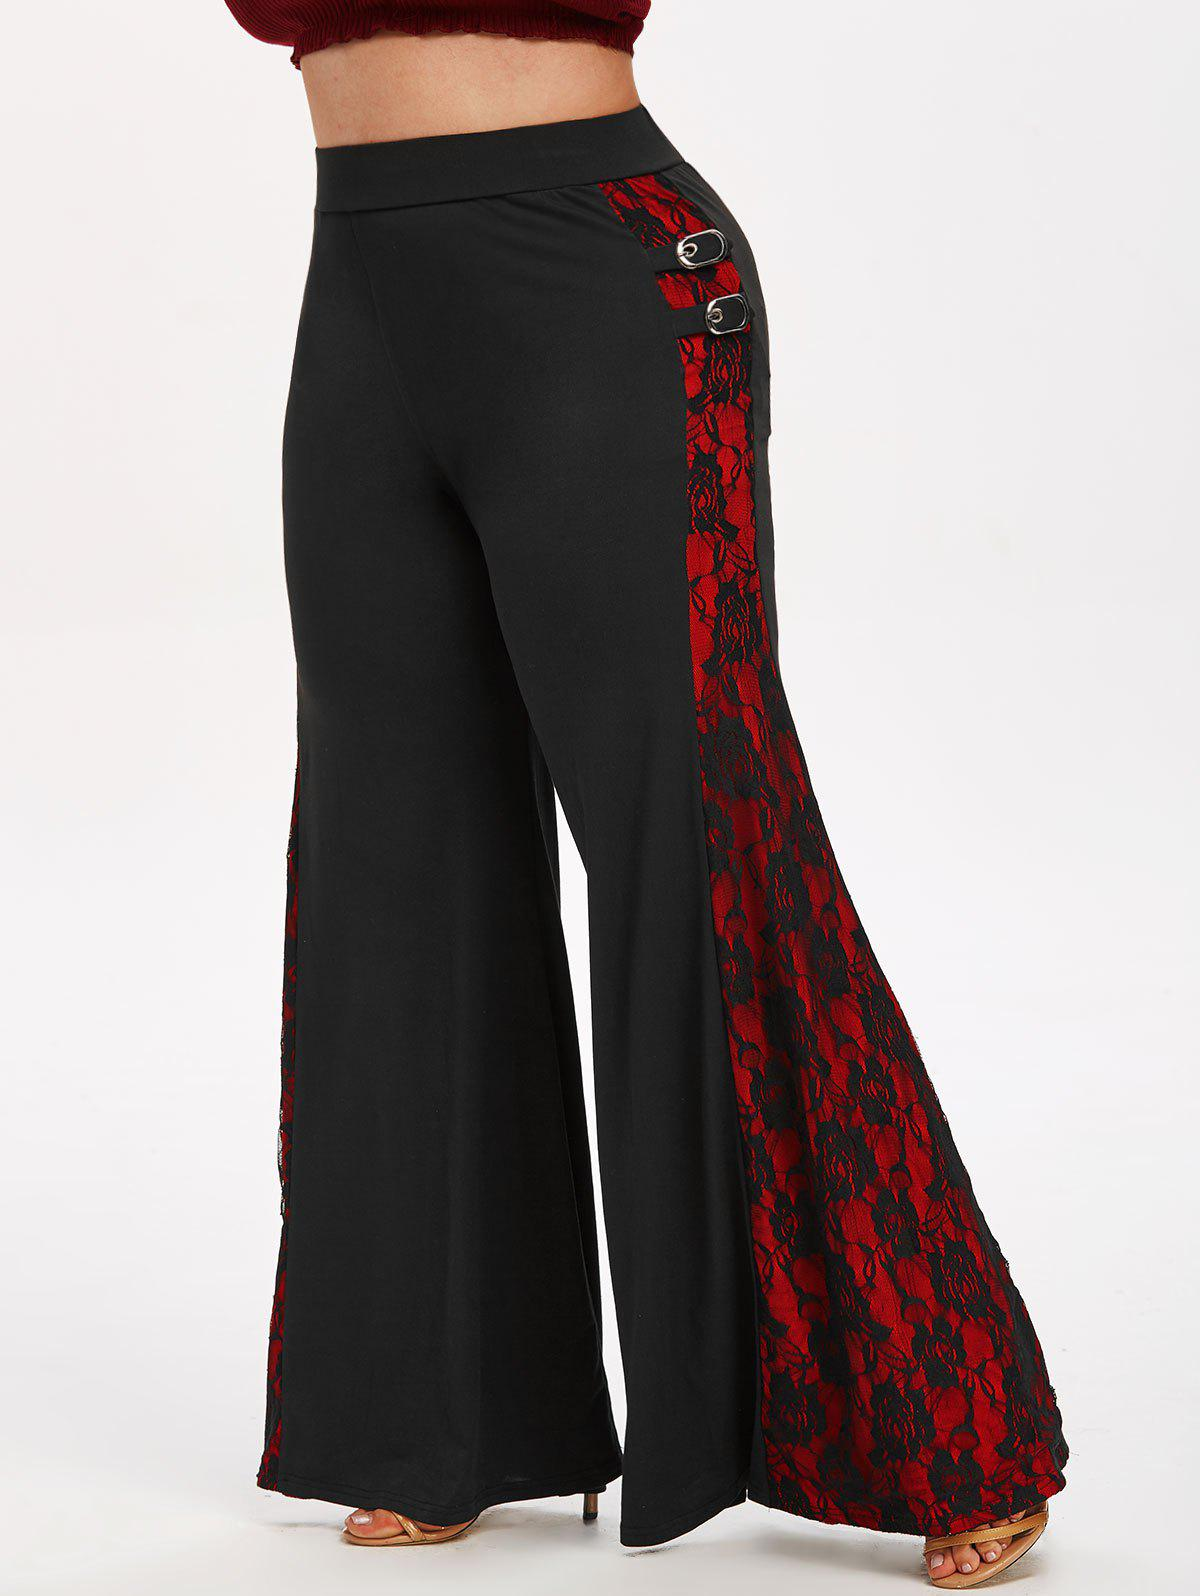 Plus Size Buckle Lace Insert Halloween Flare Pants - BLACK 5X